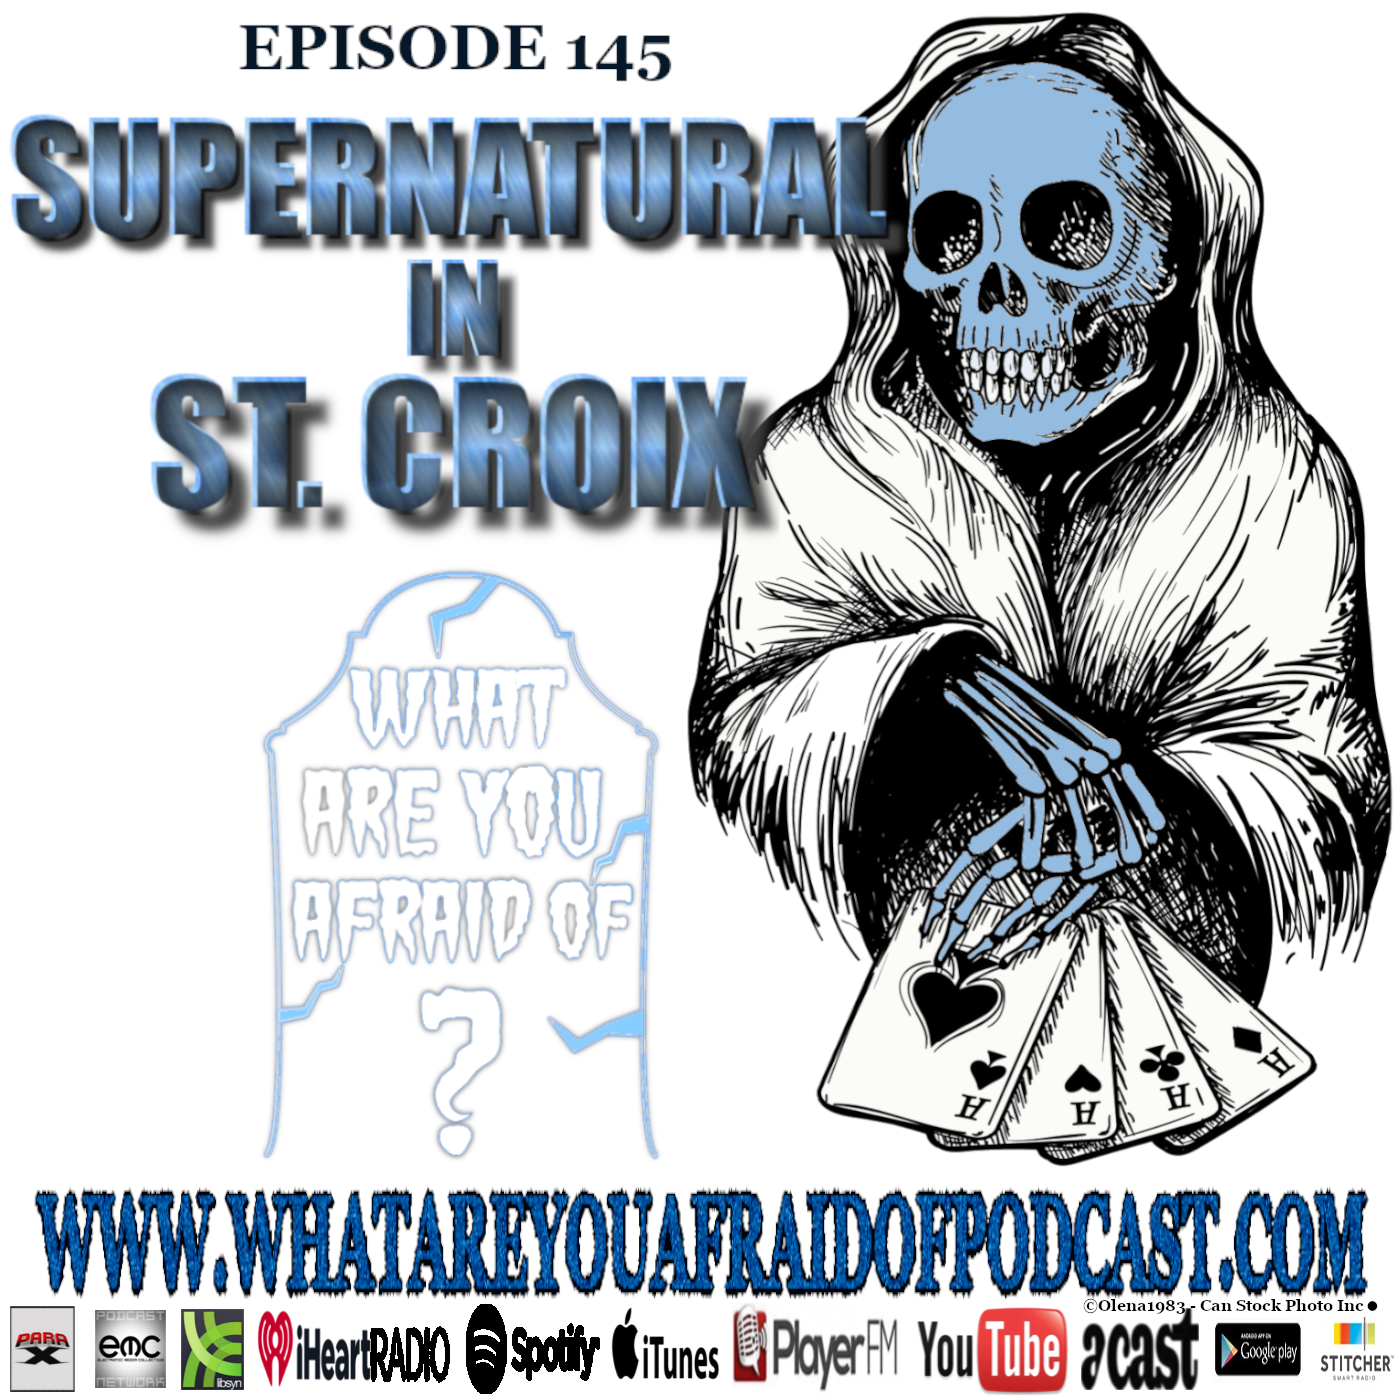 Cover for episode 145 of What Are You Afraid Of? Horror & Paranormal Show